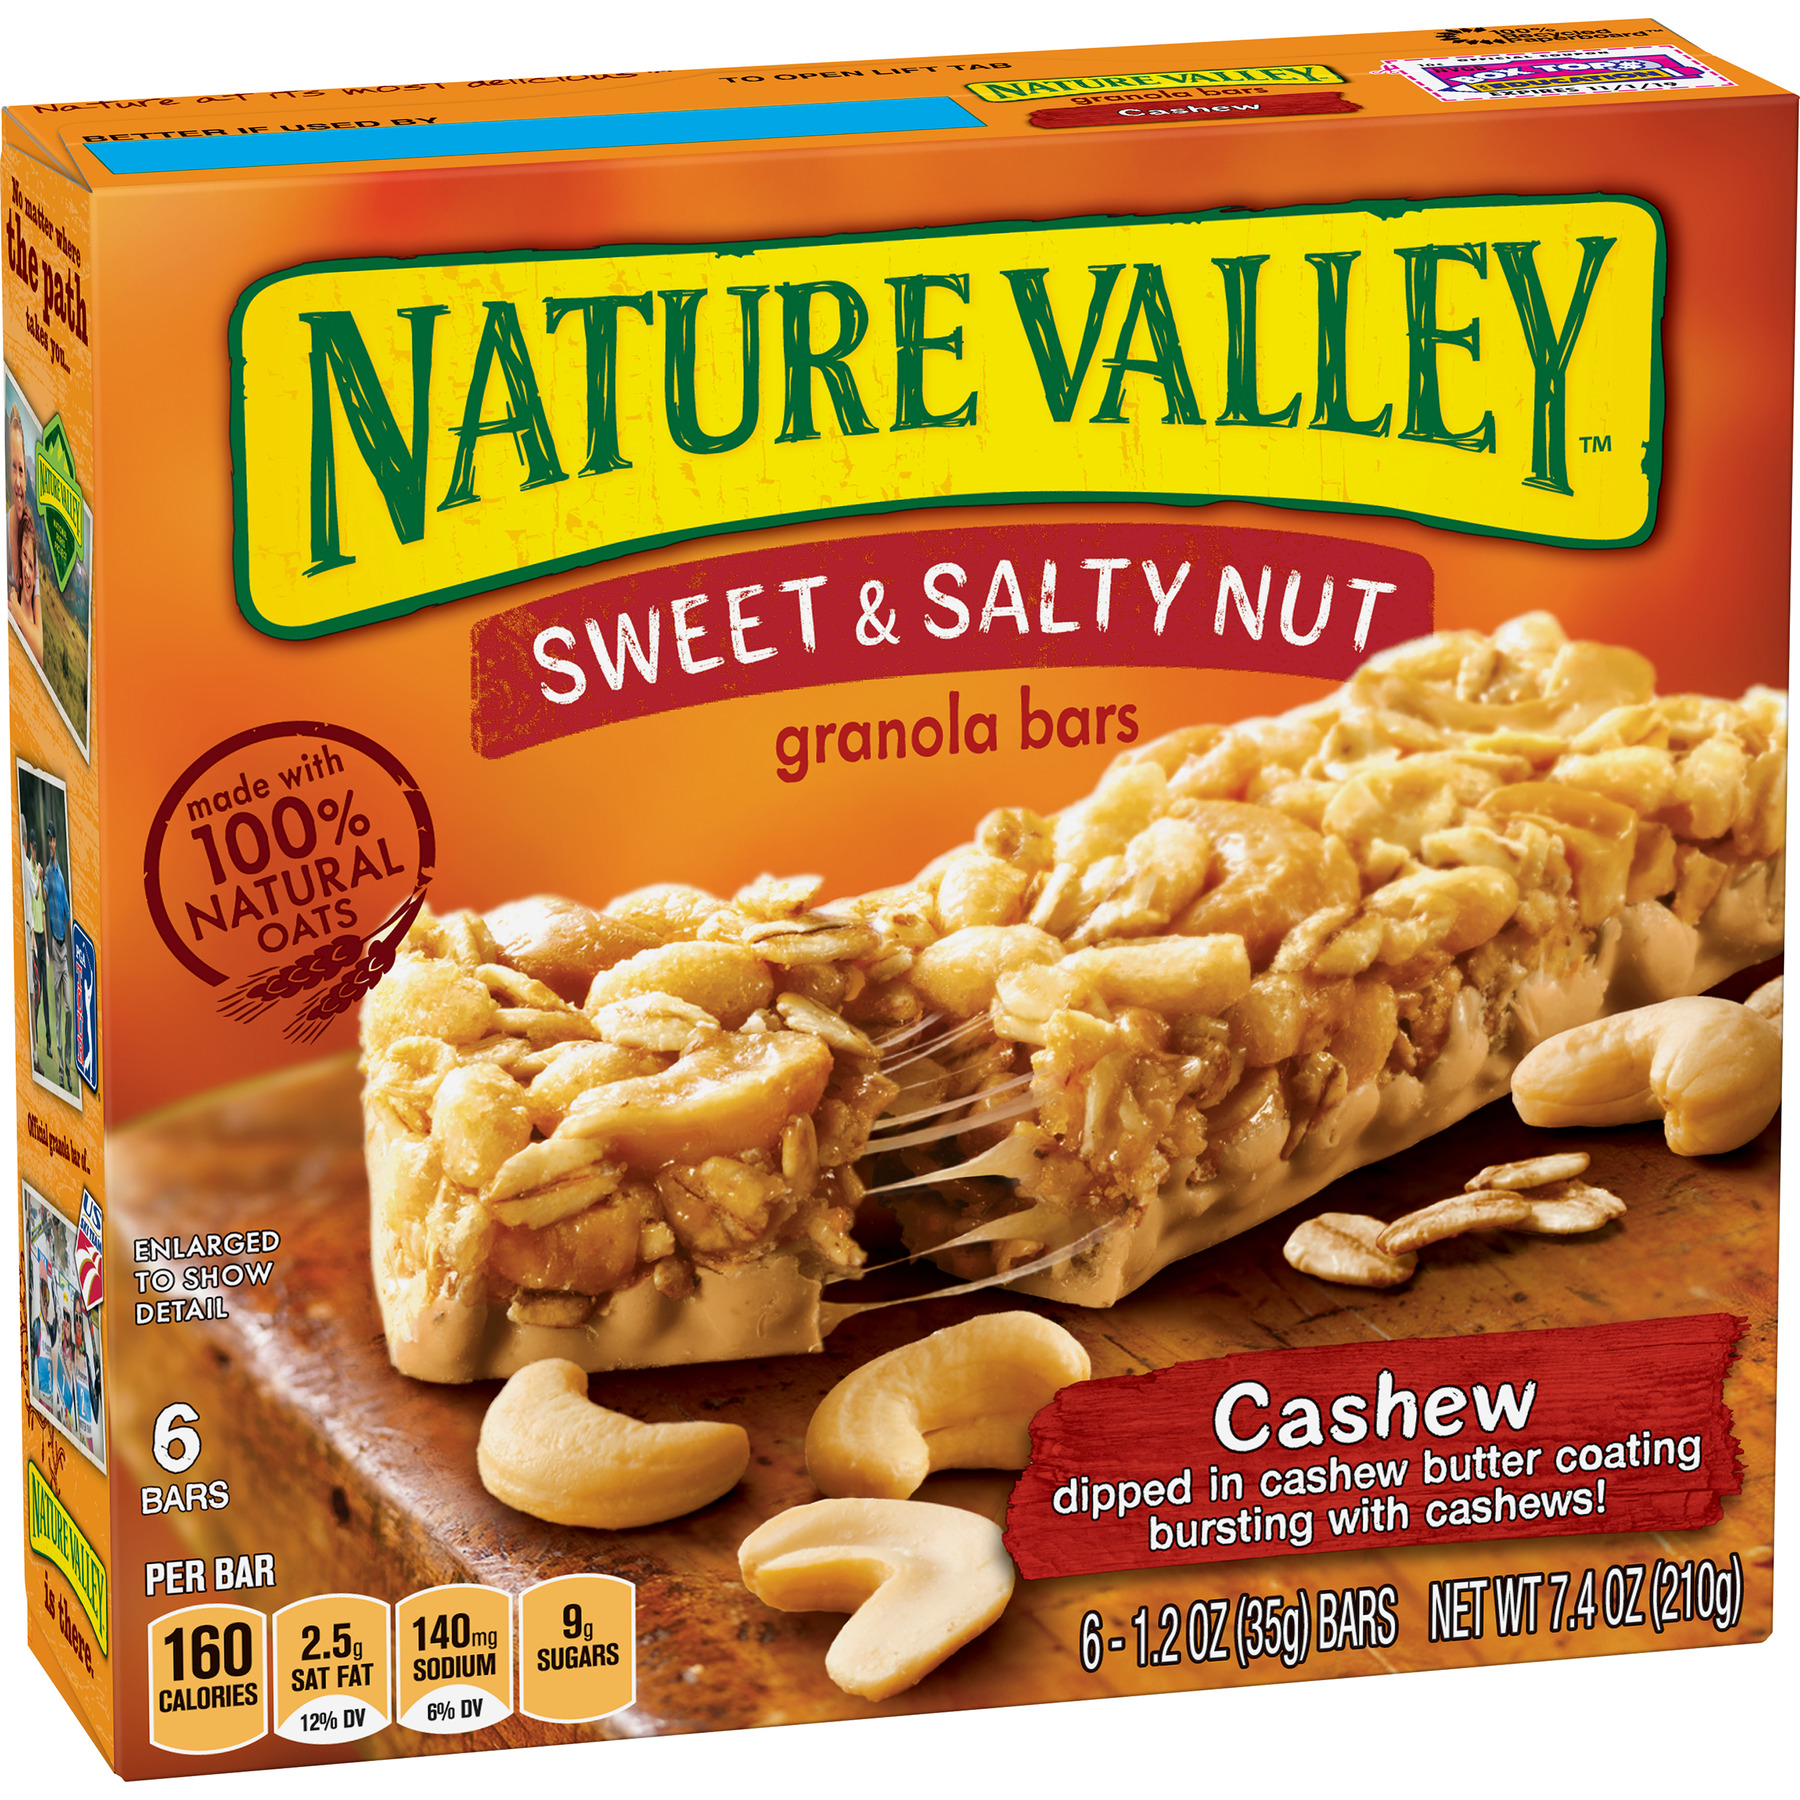 Nature Valley Granola Bars Sweet and Salty Nut Cashew 6 Bars - 1.2 oz